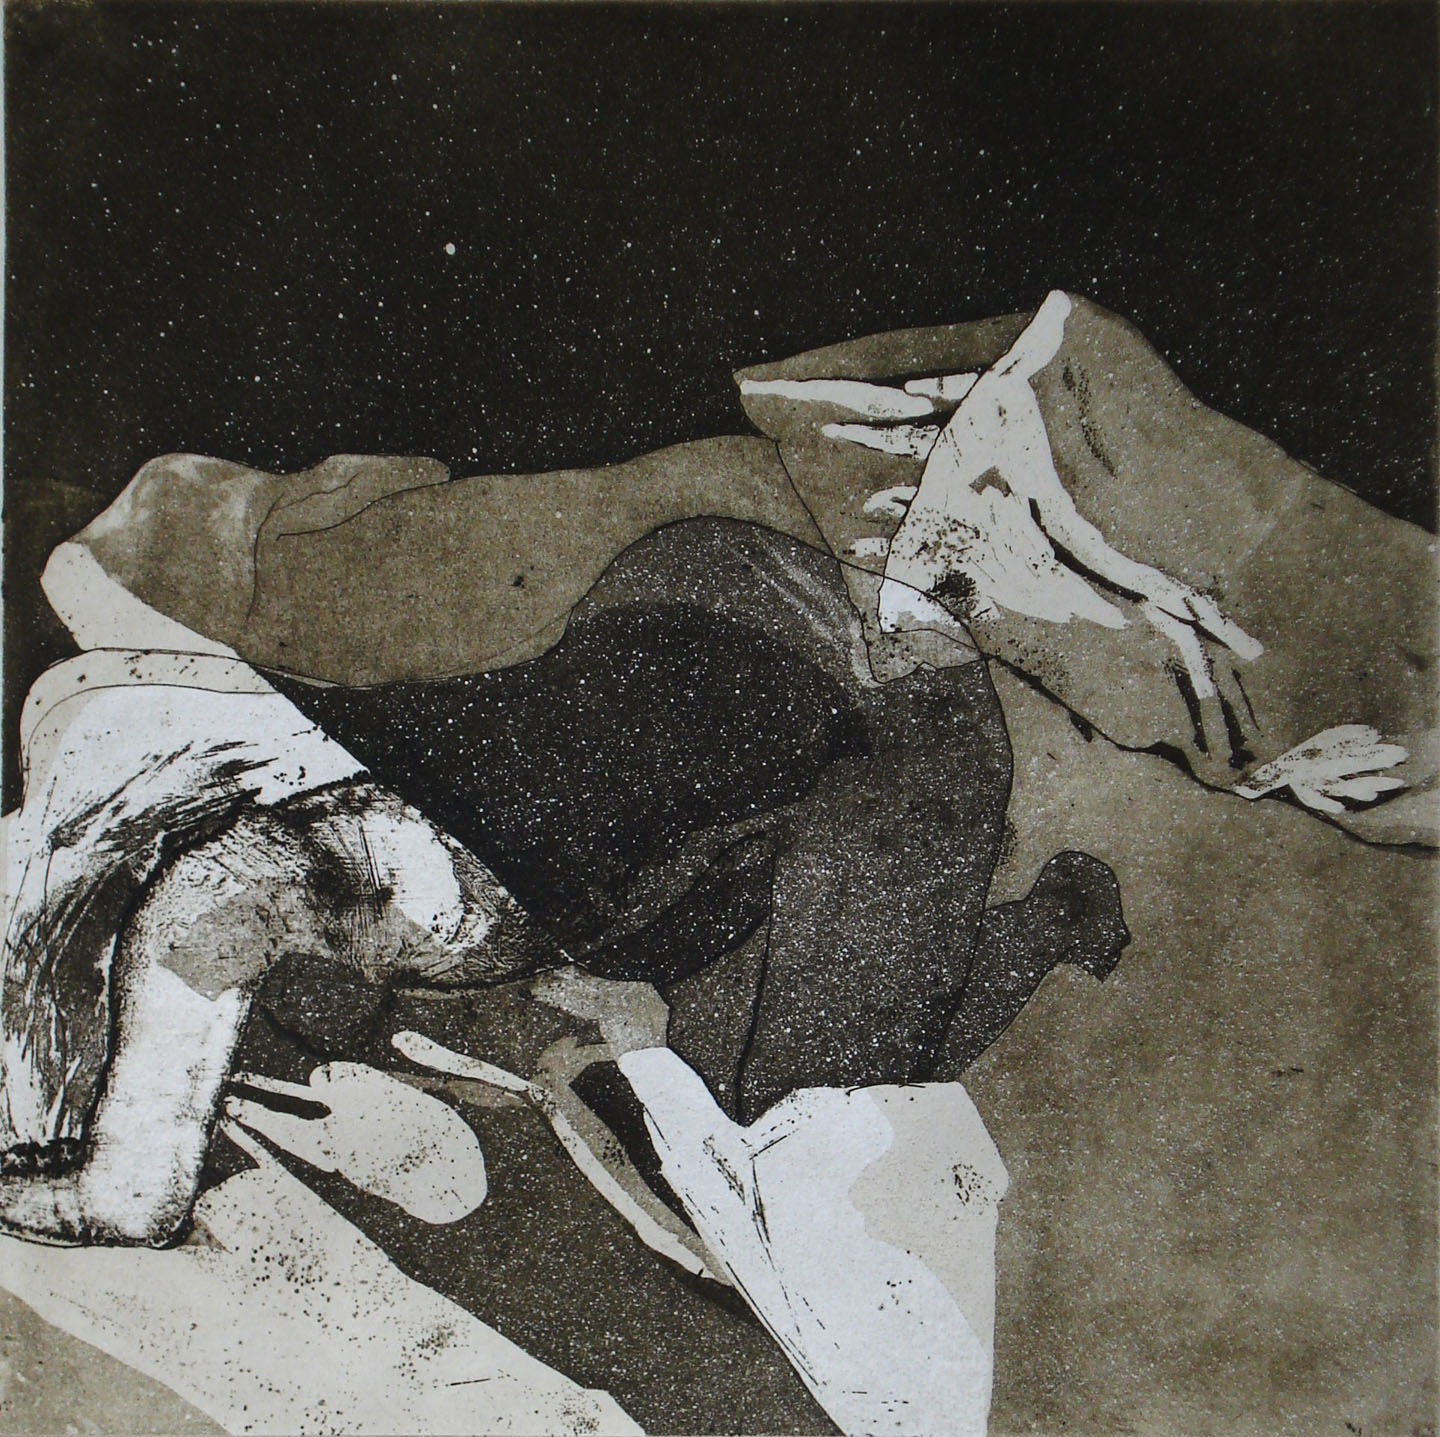 Room 402;2005  Intaglio with chine-collé,13 x 15 in